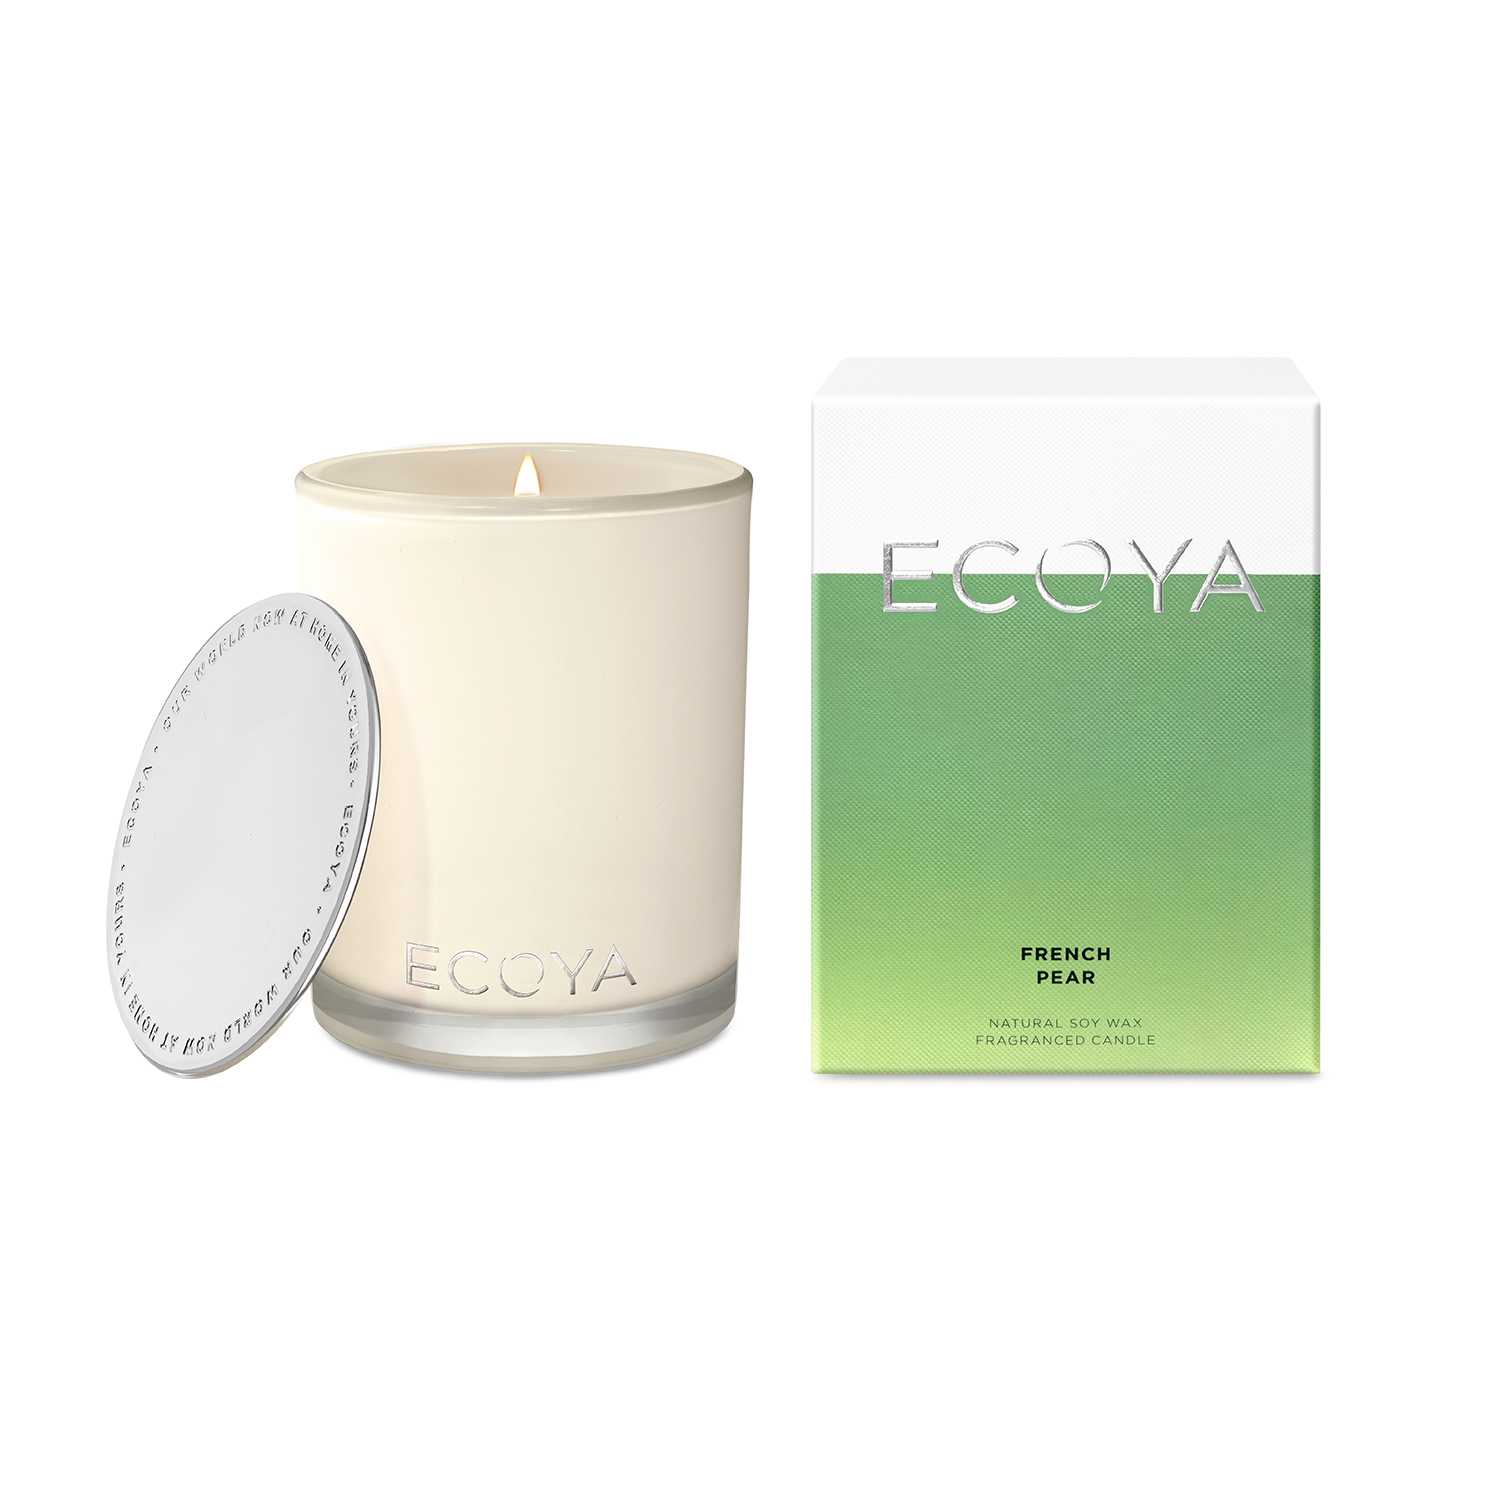 Ecoya Madison Jar French Pear Candle 400g